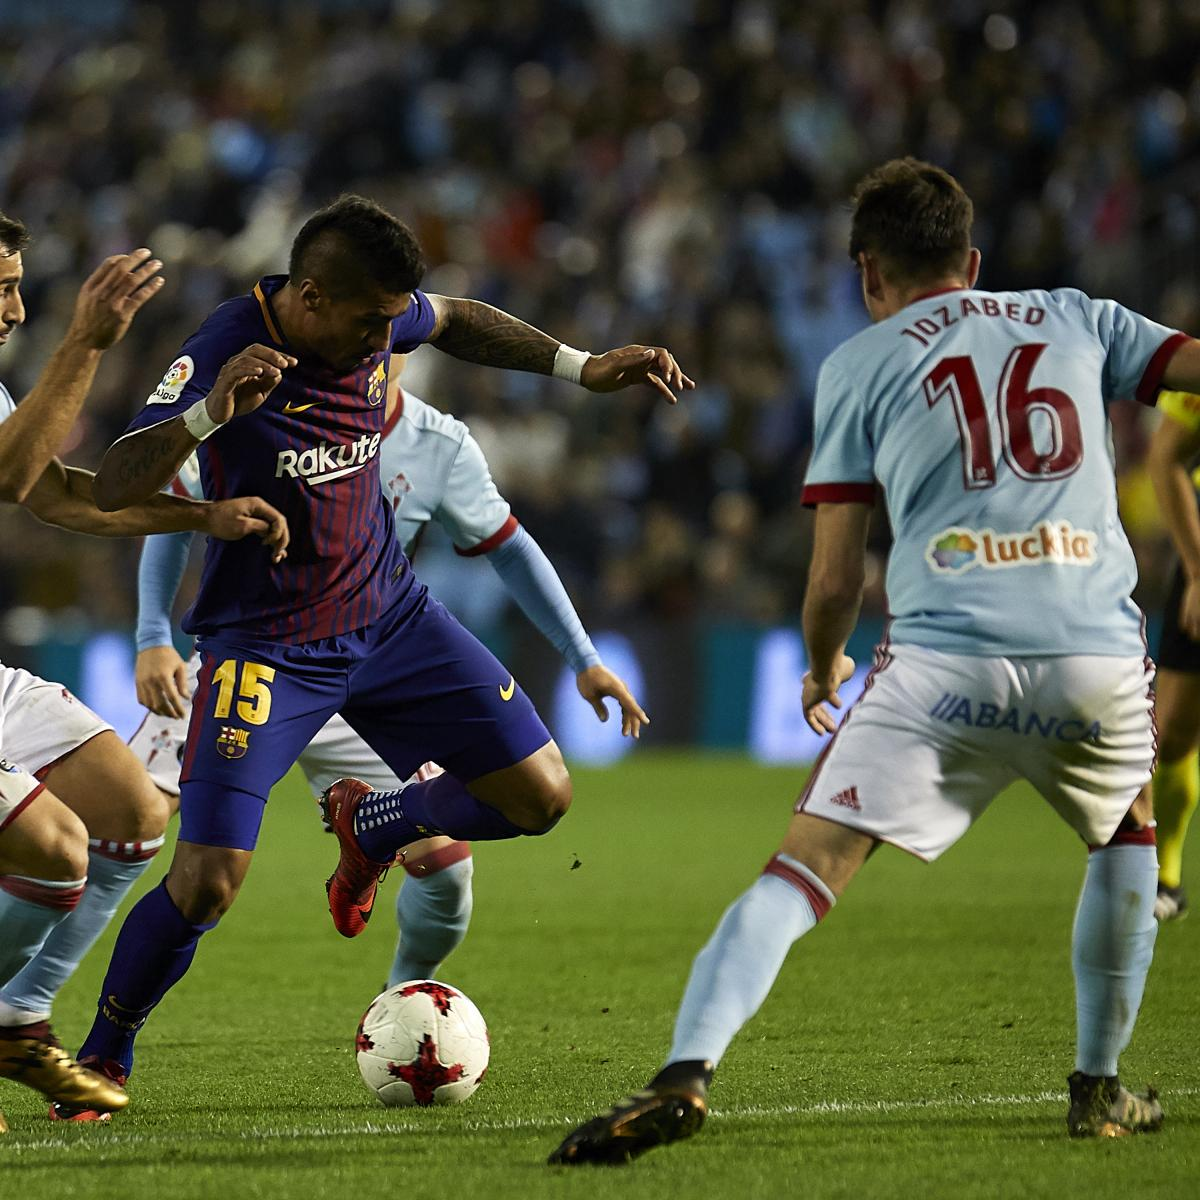 Barcelona Vs Celta Vigo In Youtube: Barcelona Vs. Celta Vigo: 2018 Spanish Copa Del Rey Leg 2